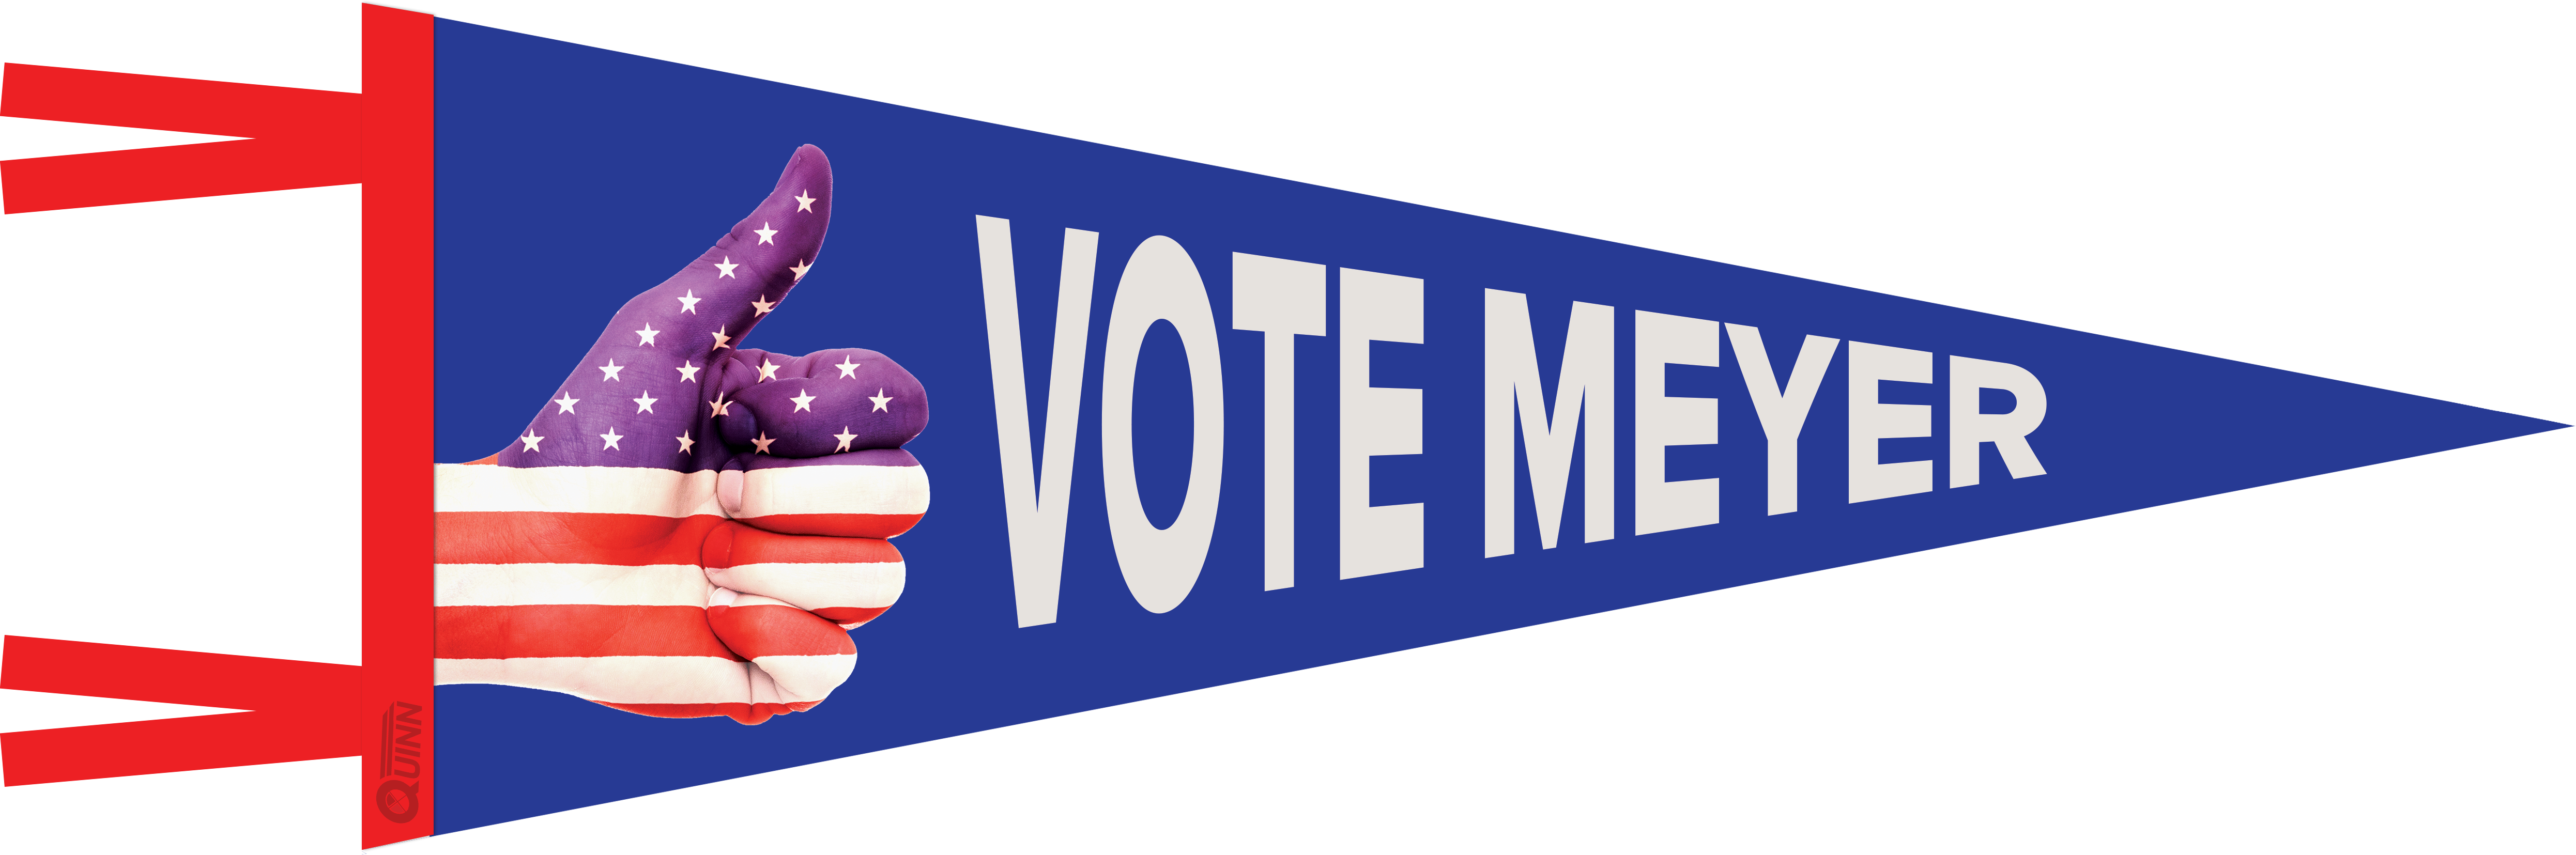 Pin On How To Promote Your Political Message